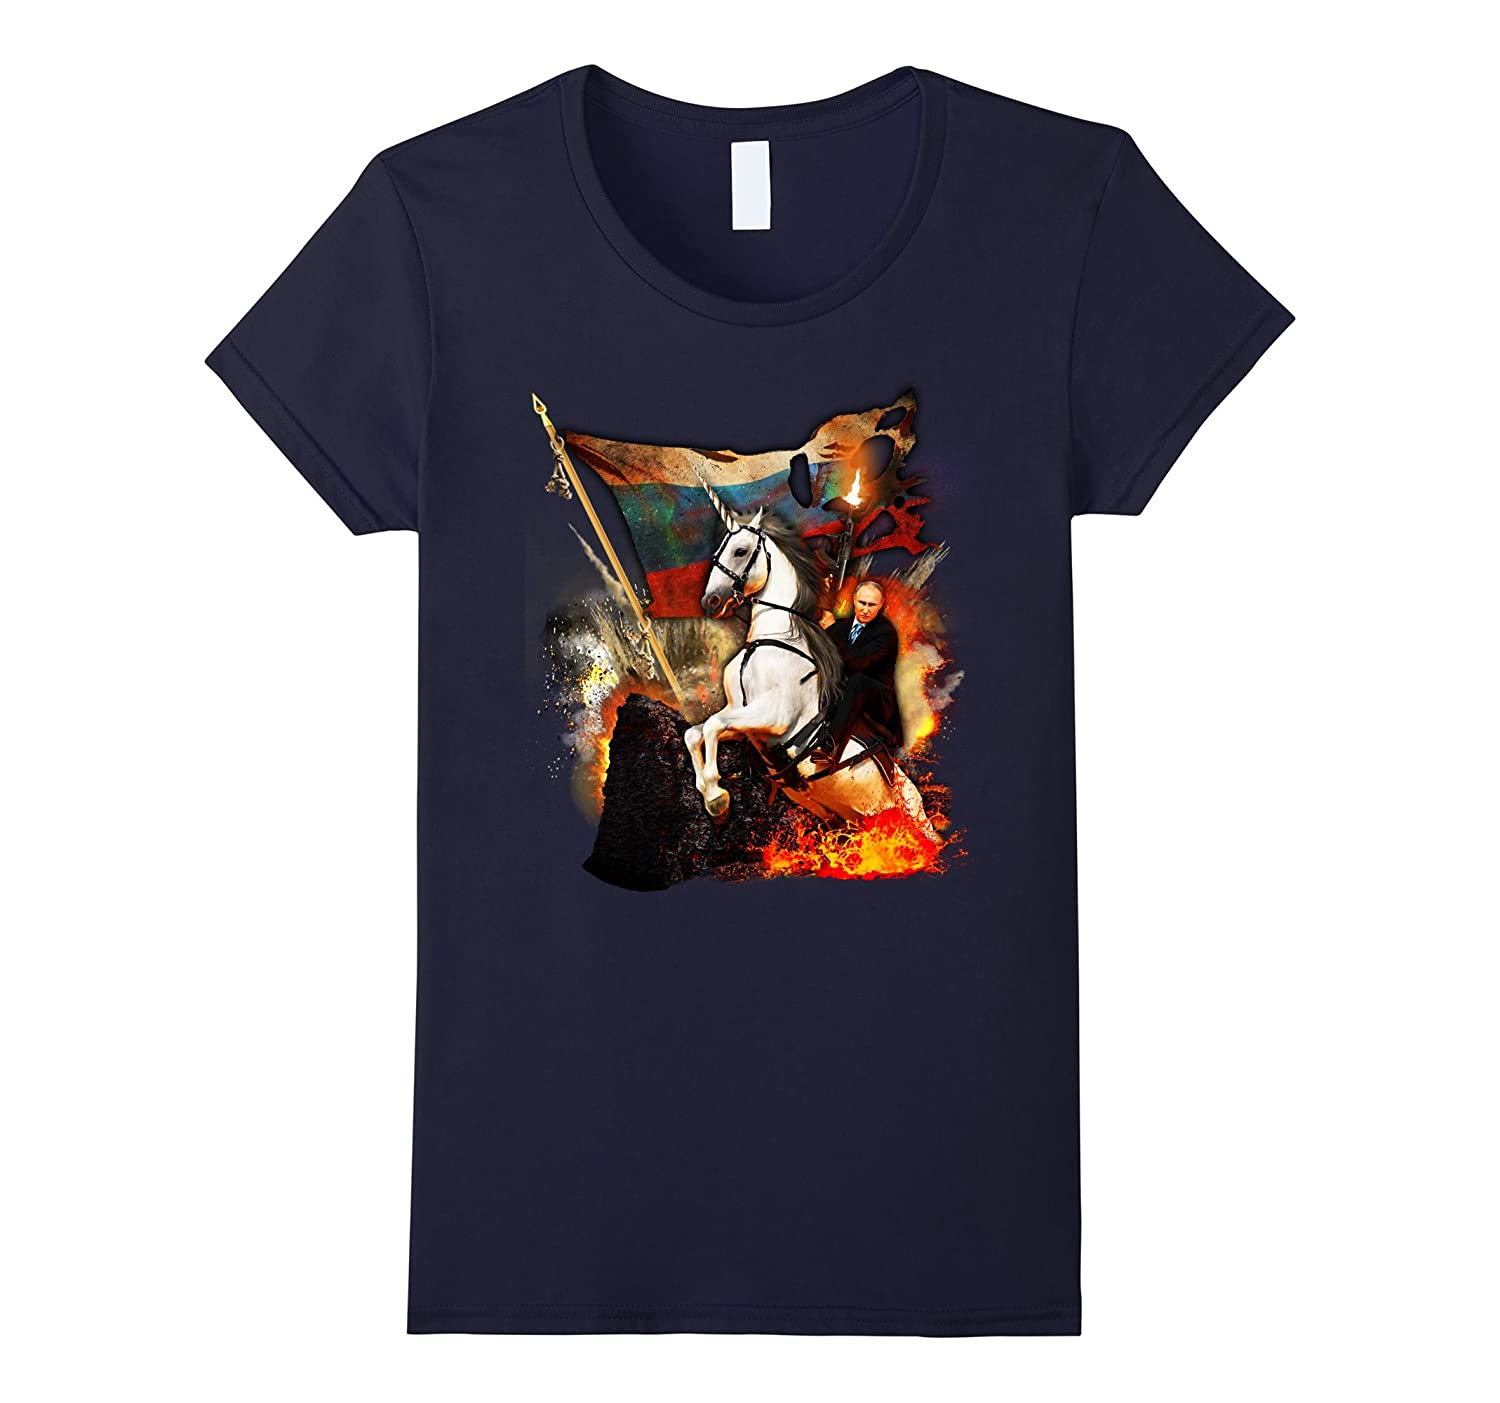 "Limited Edition ""Vladimir Putin Riding Unicorn"" T-shirt"